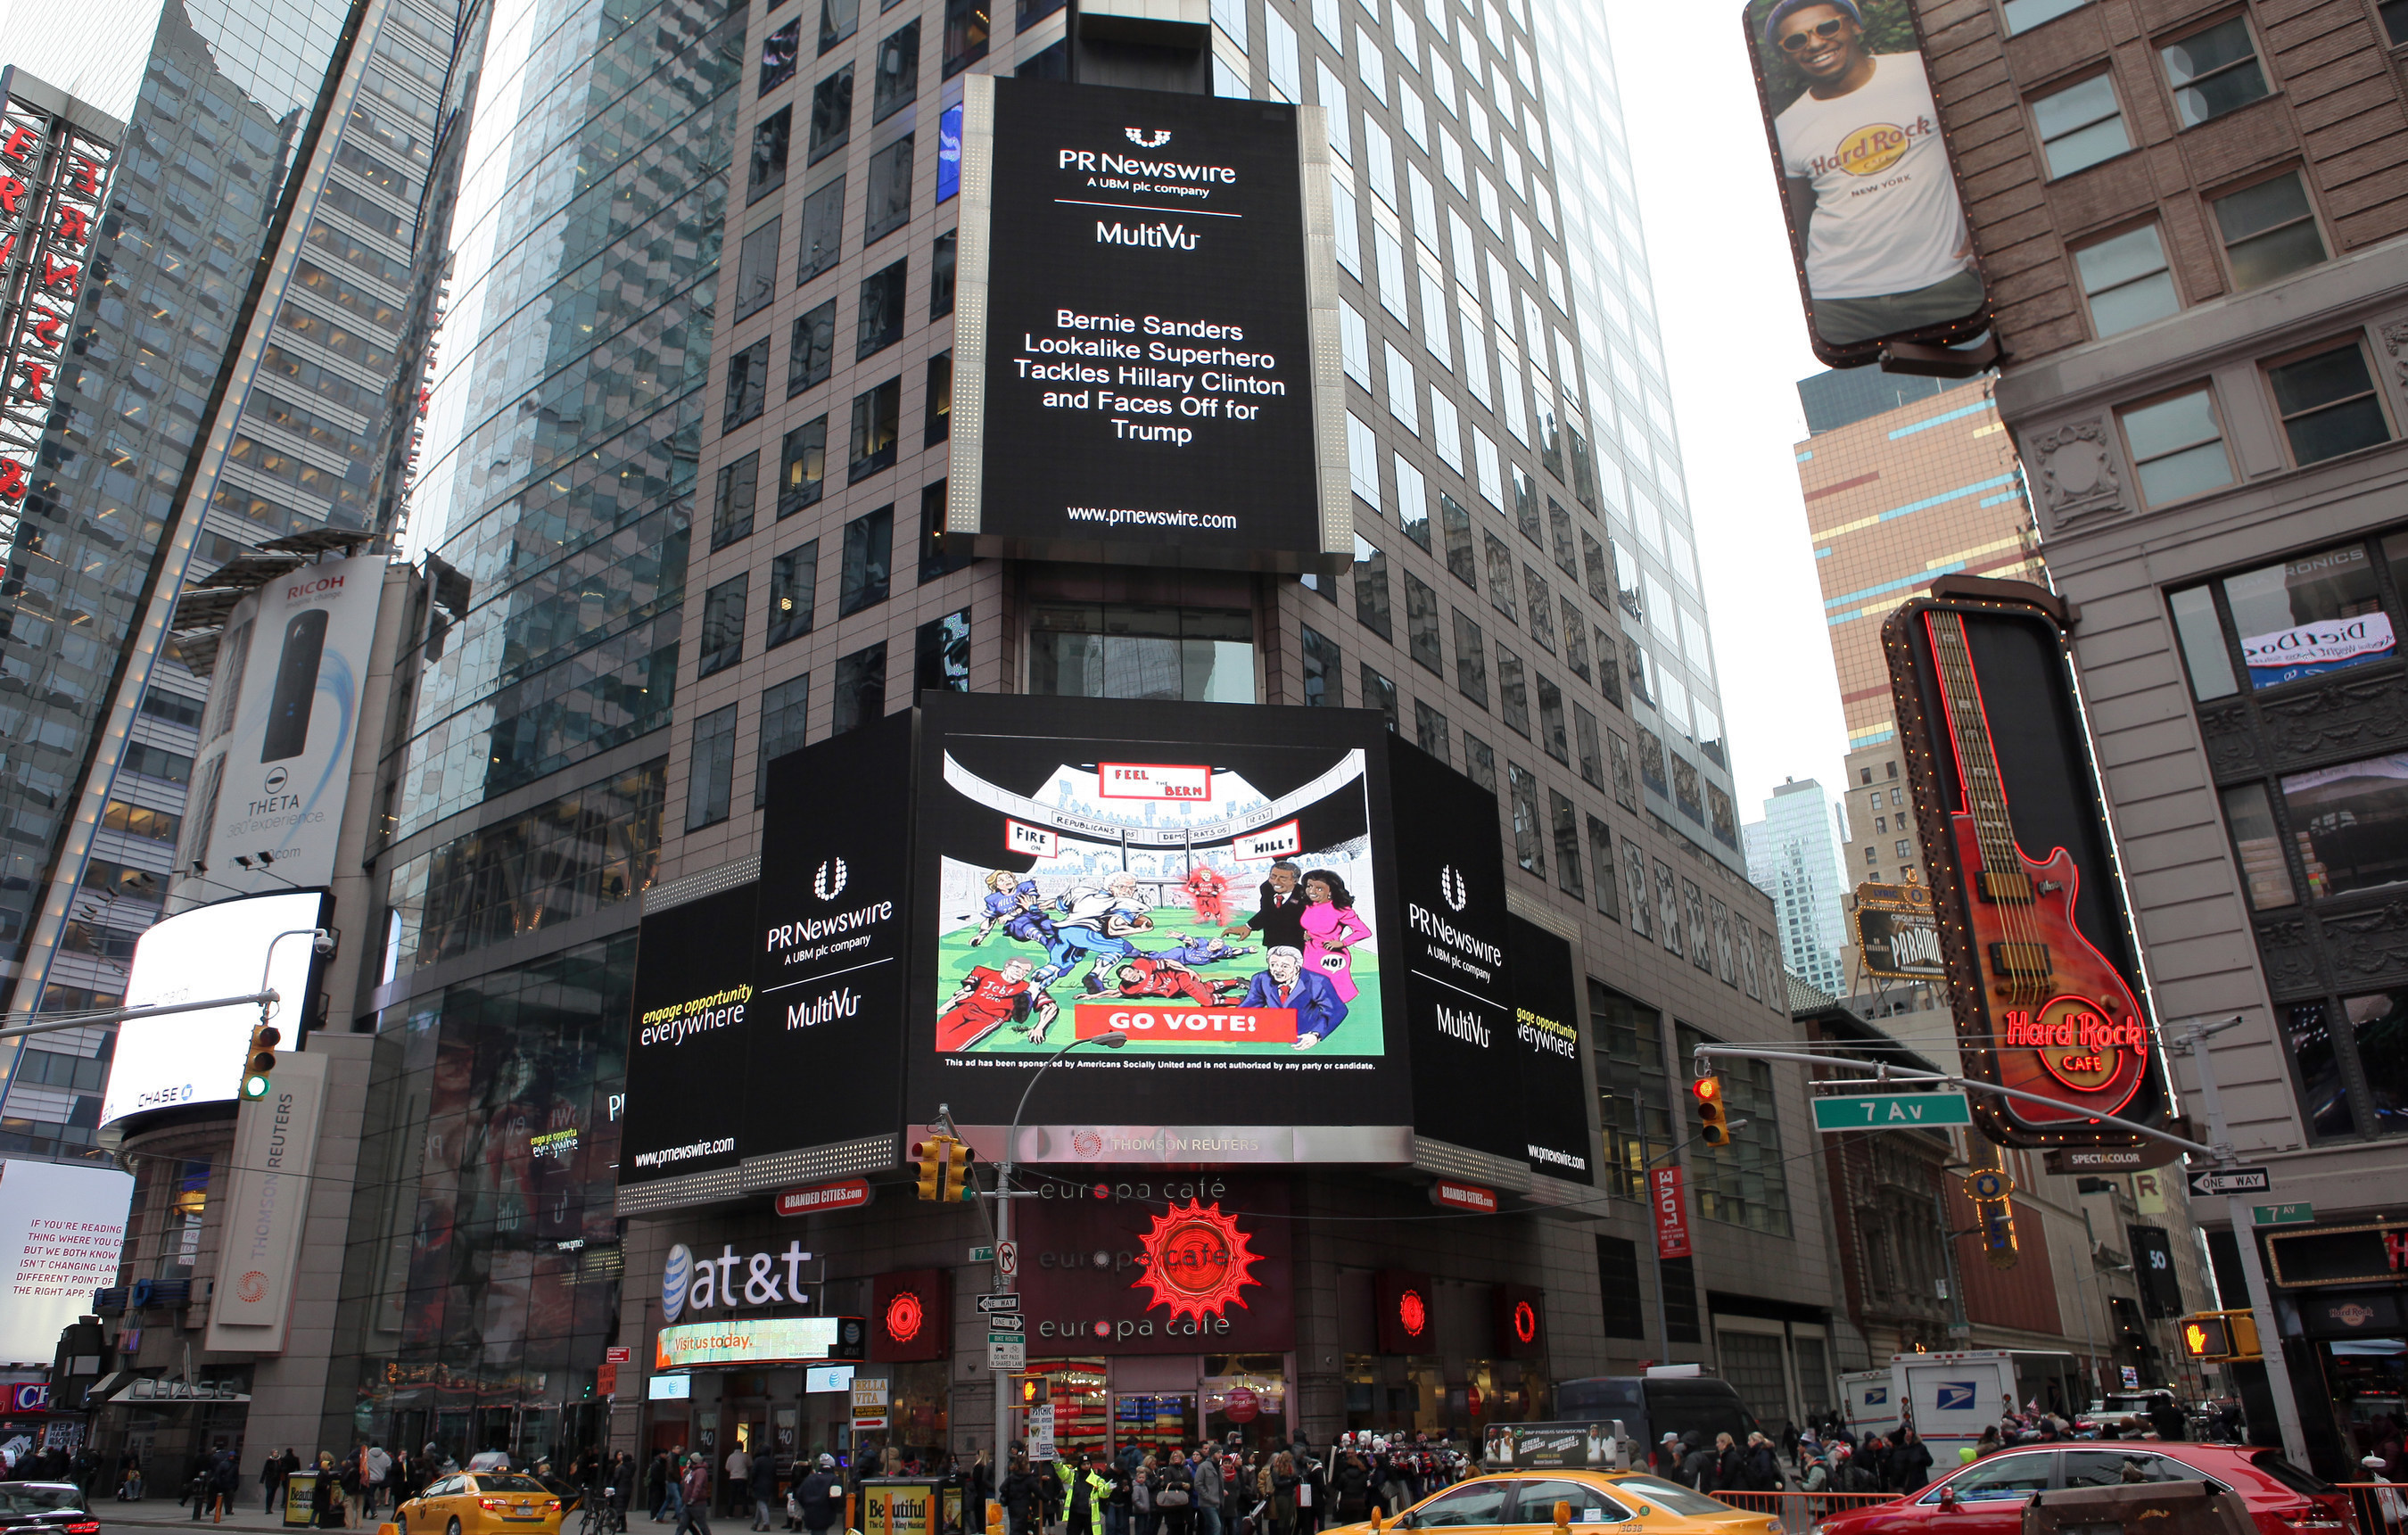 Bernie Sanders First and Goal for Primary: NY Times Square Billboard Comic Ad Sequel on Super Bowl